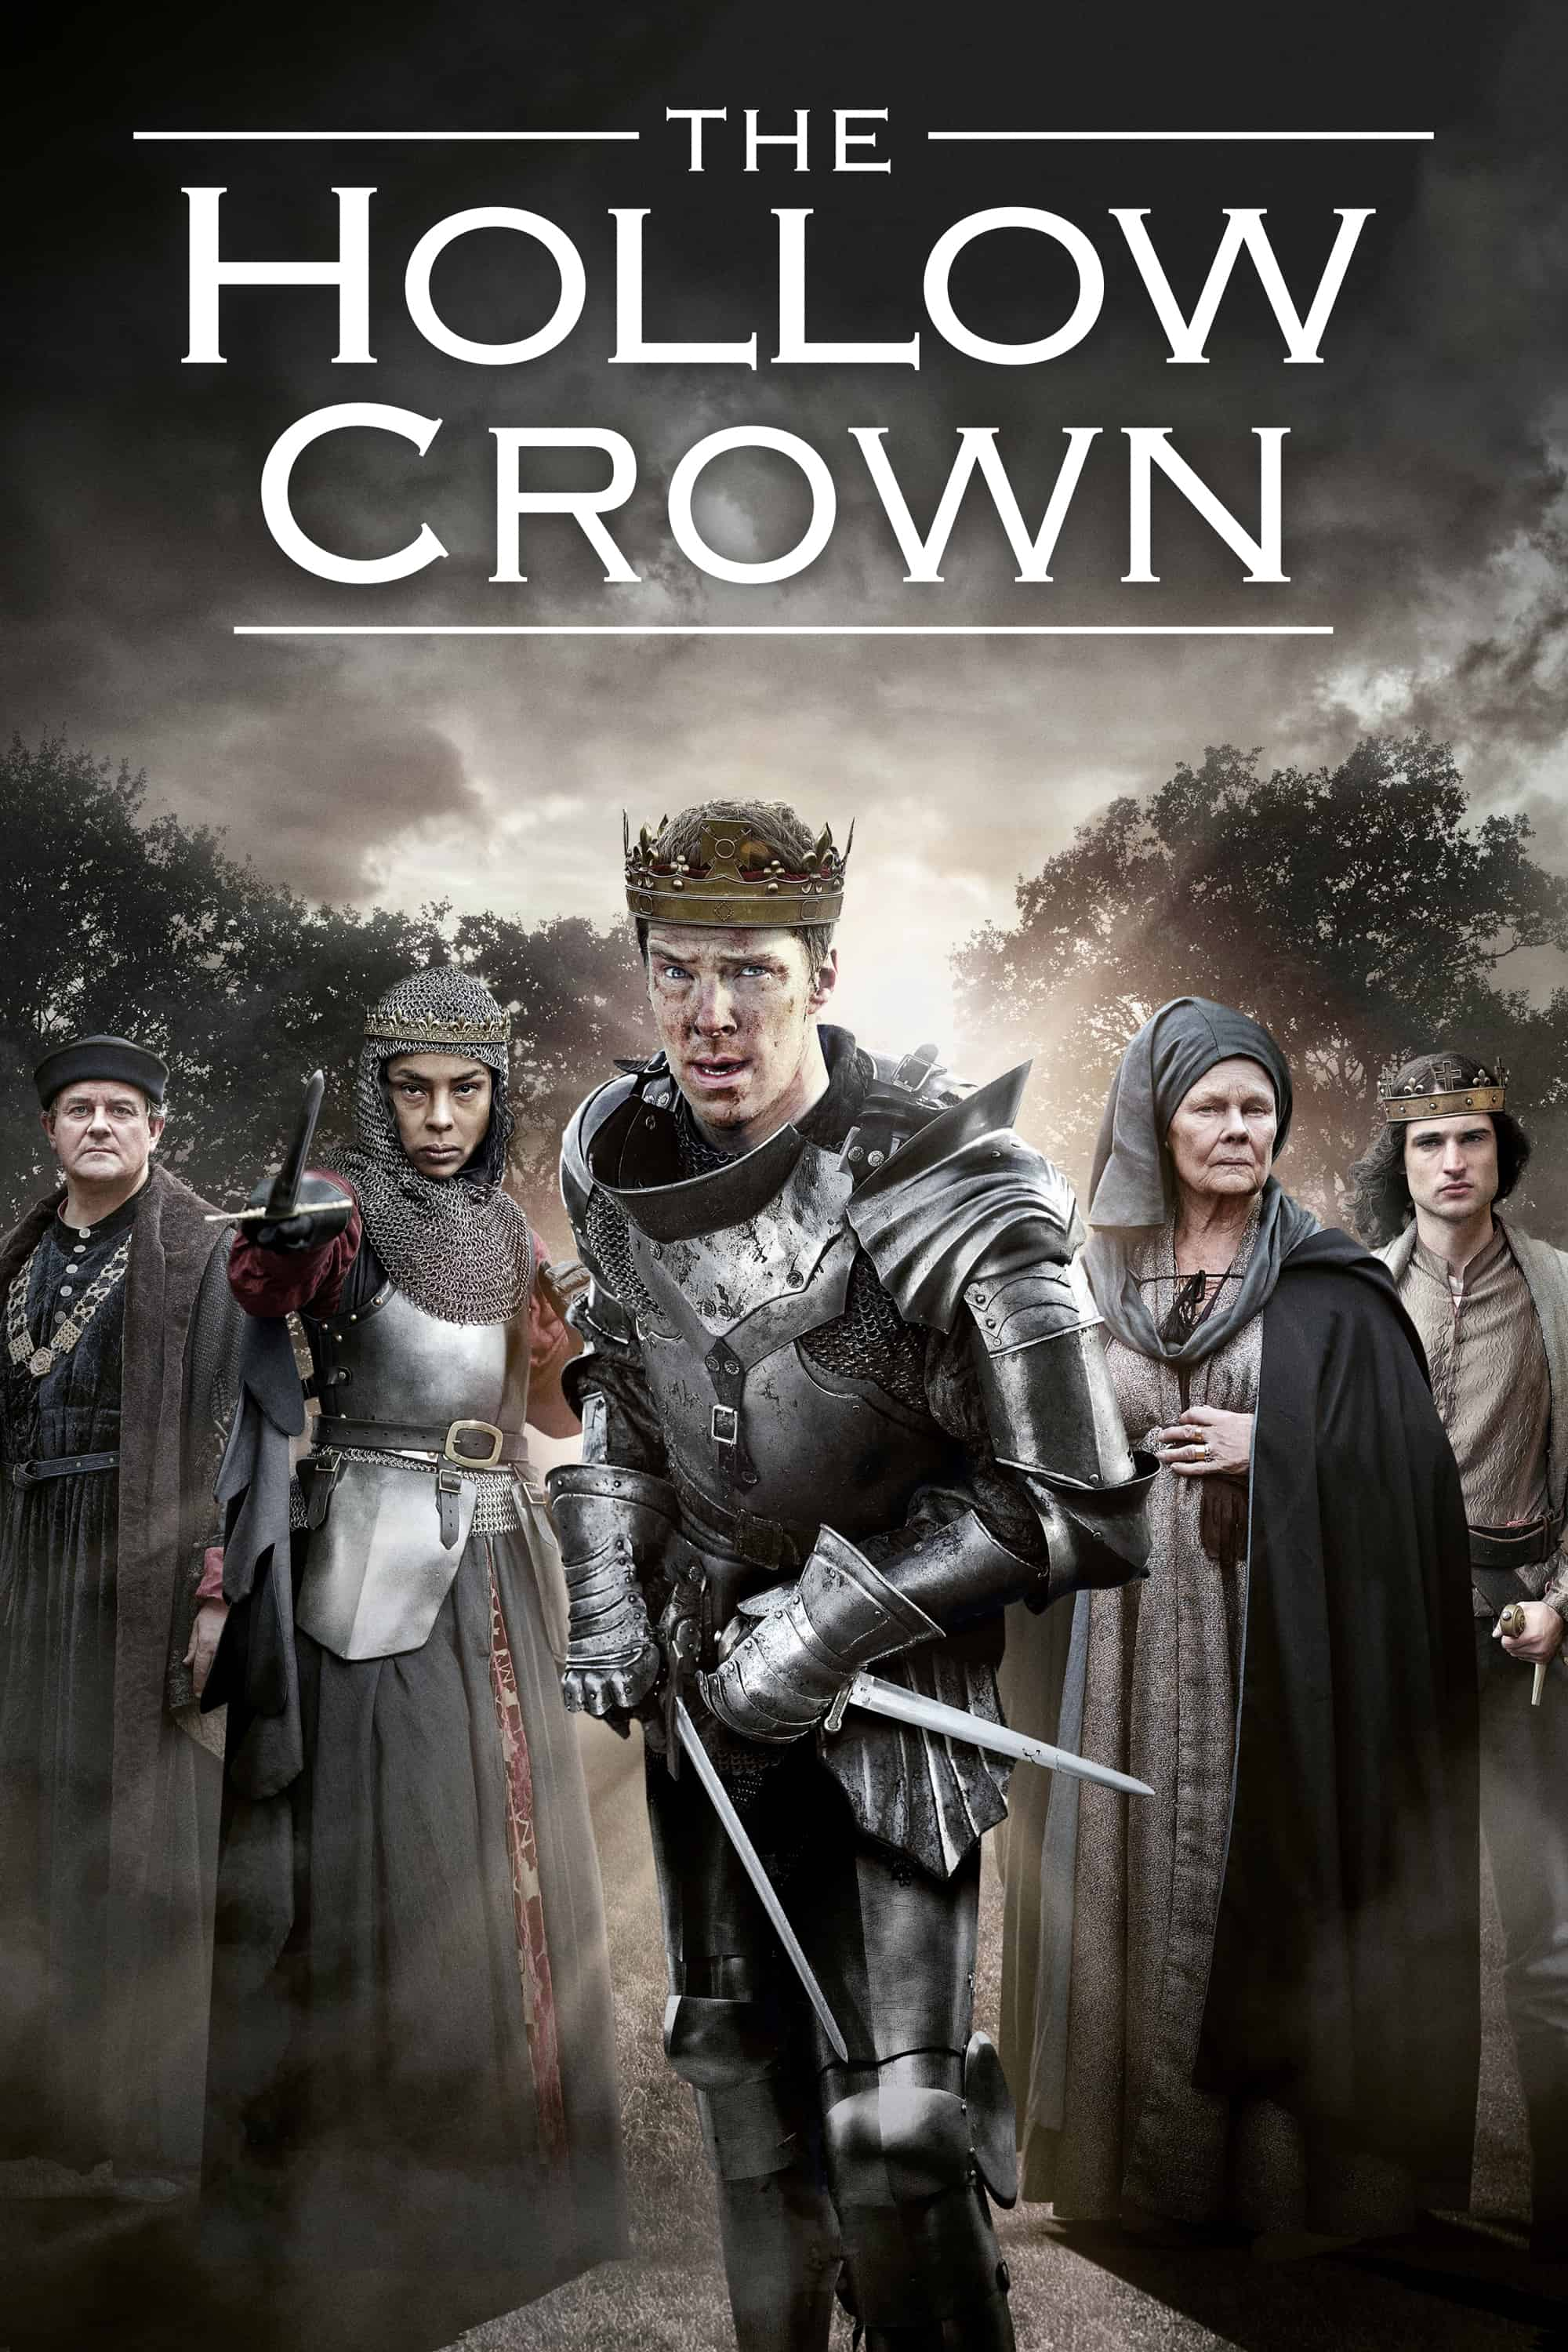 The Hollow Crown, 2012